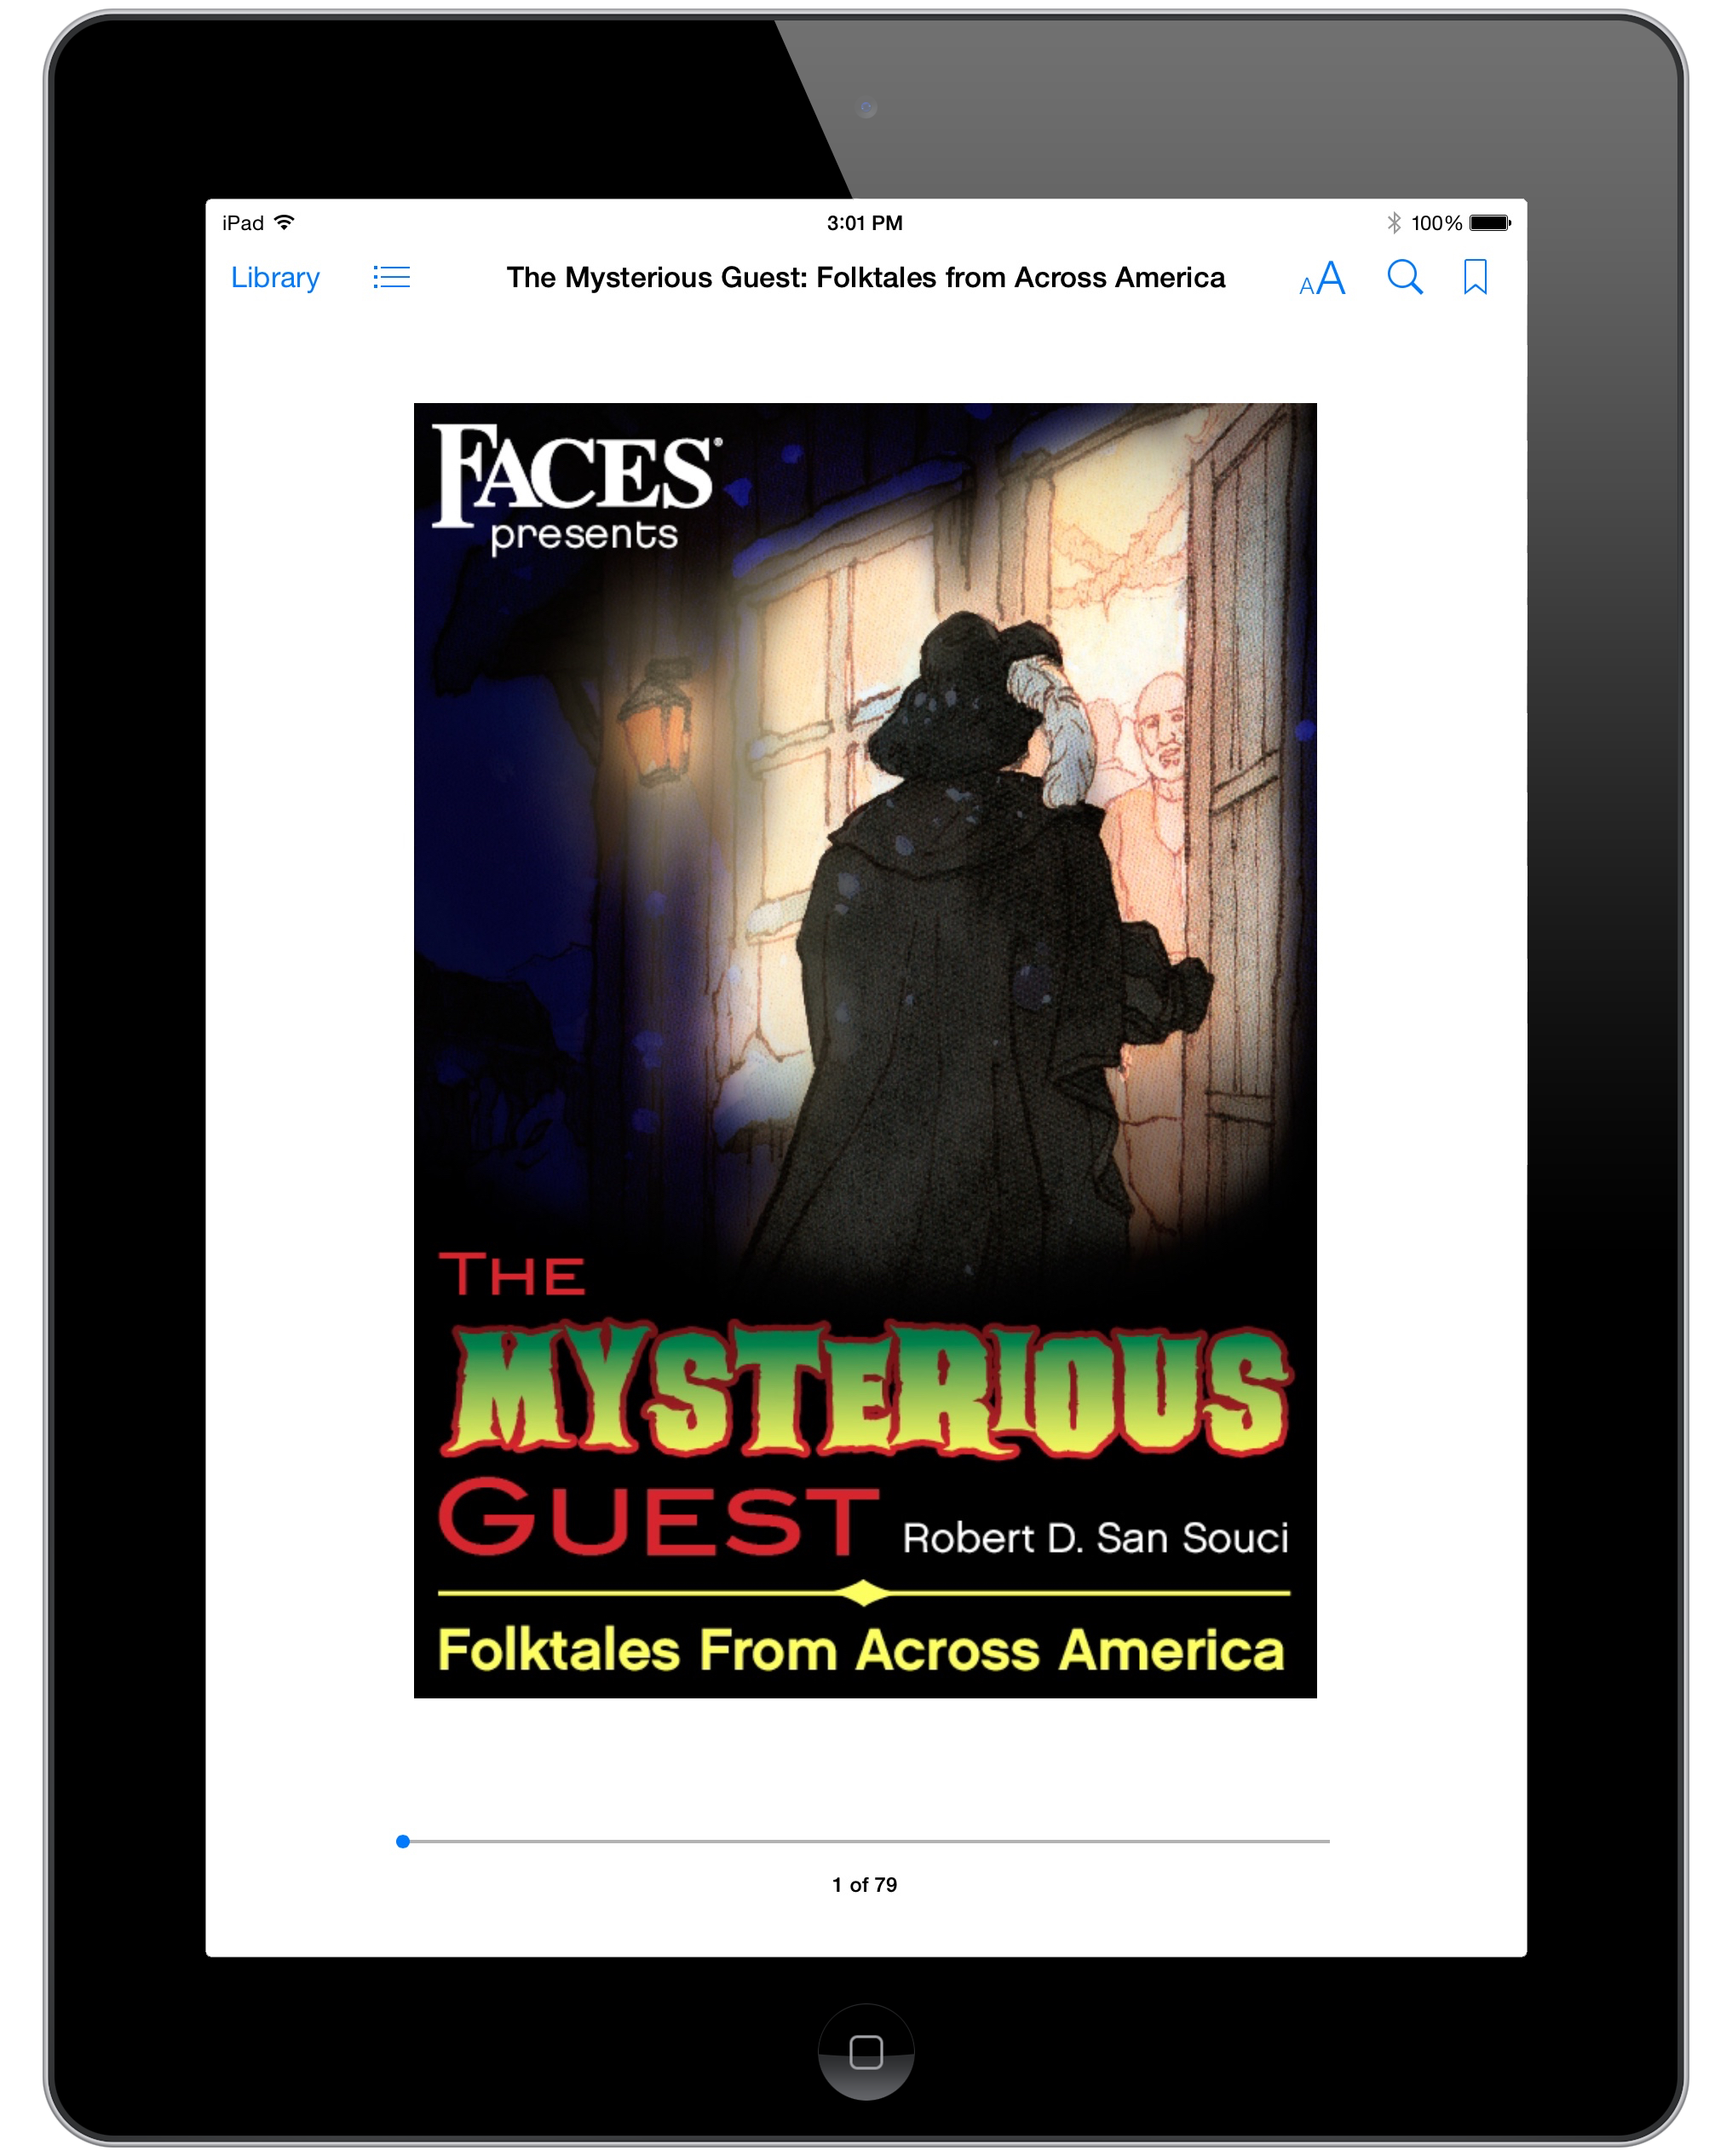 The Mysterious Guest